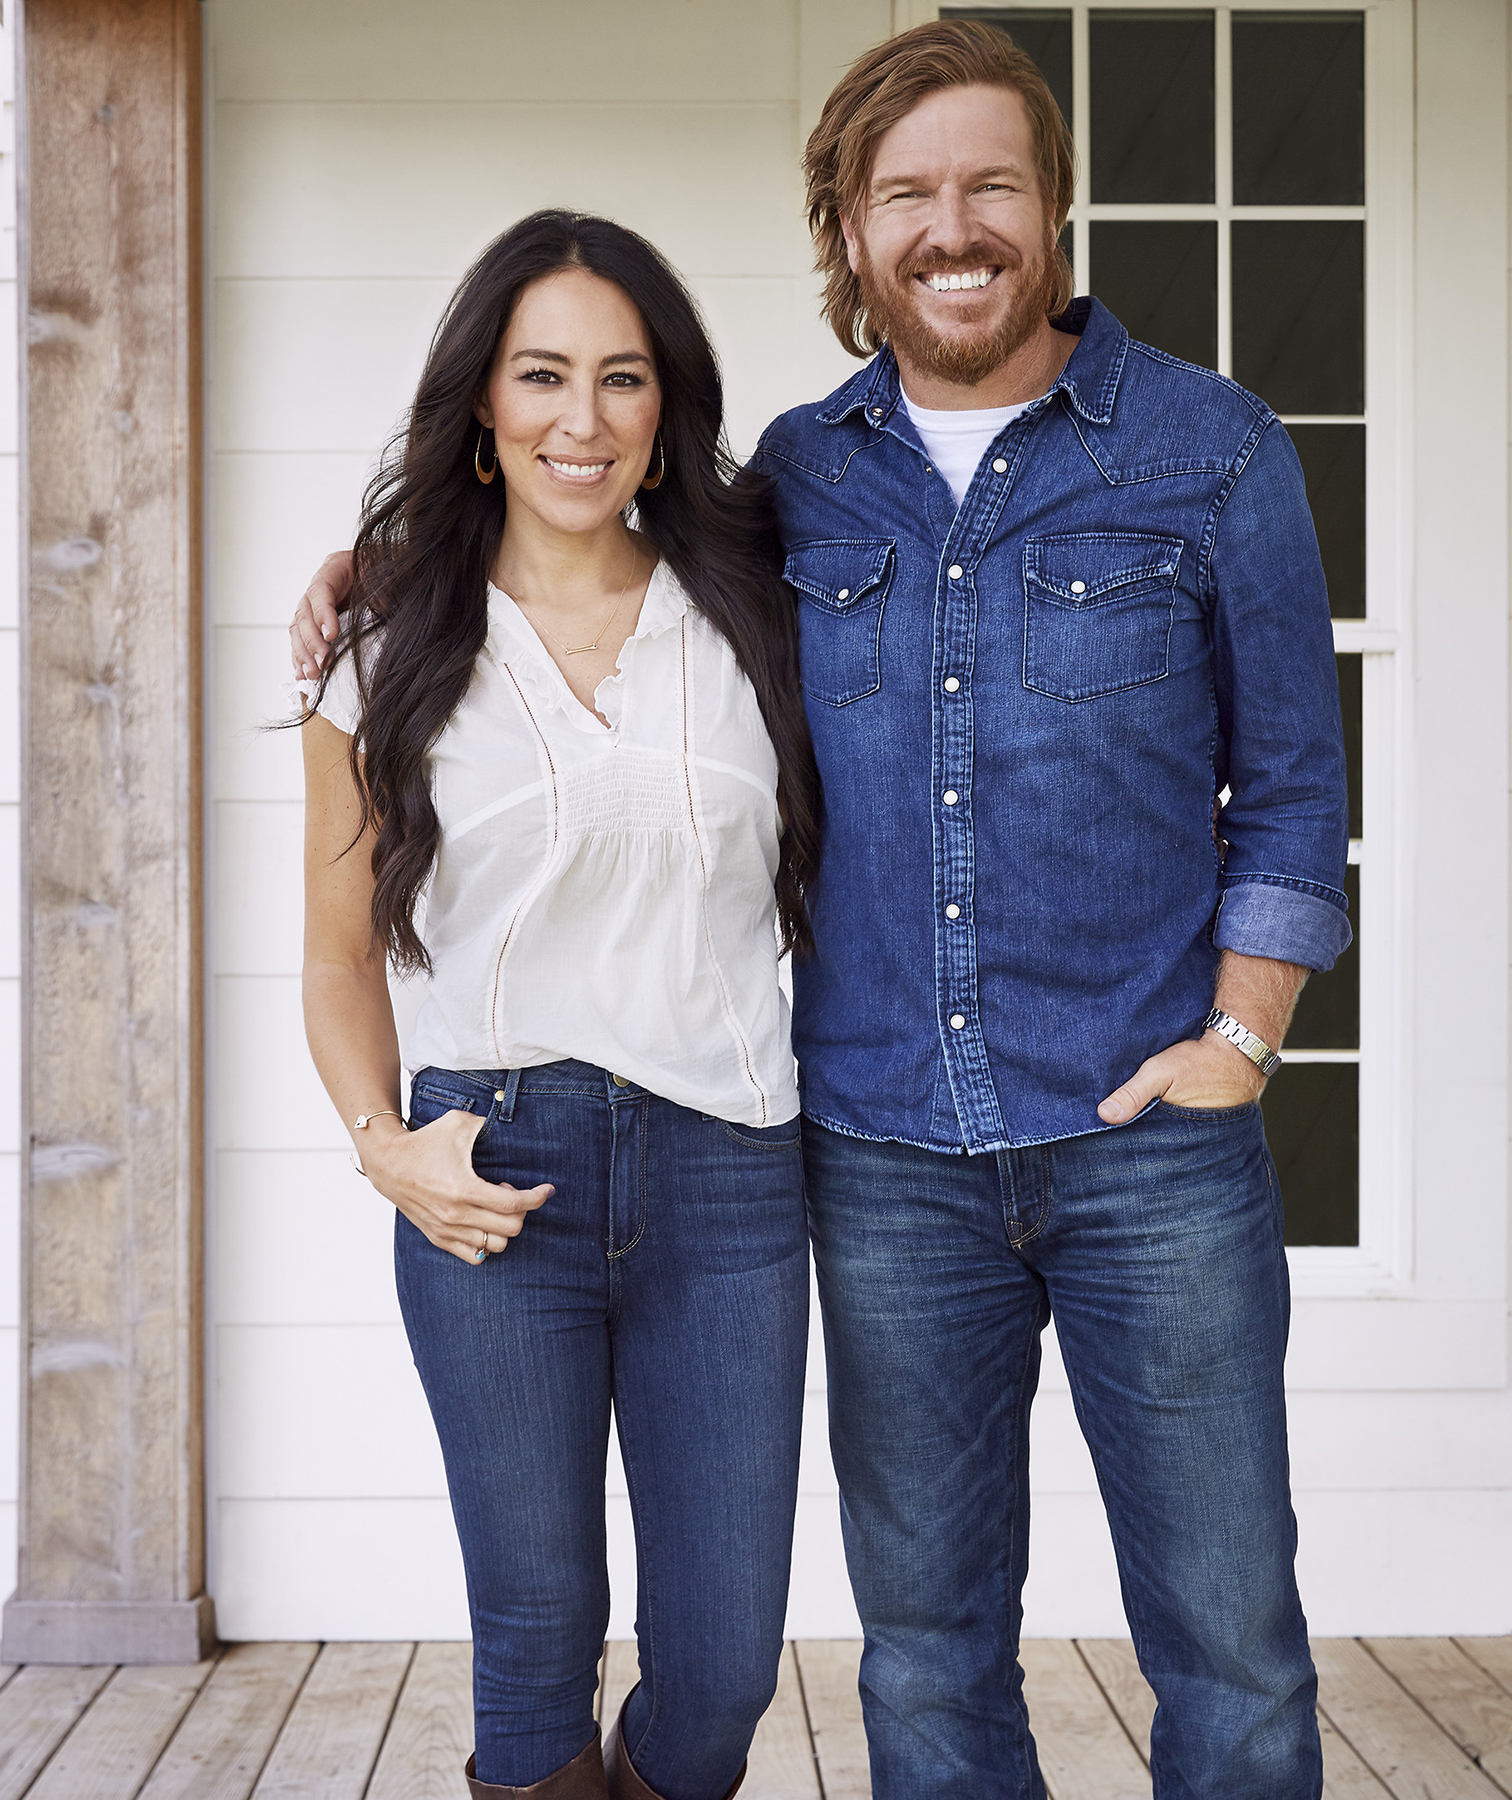 Chip and Joanna Gaines Will End Fixer Upper After 5th Season